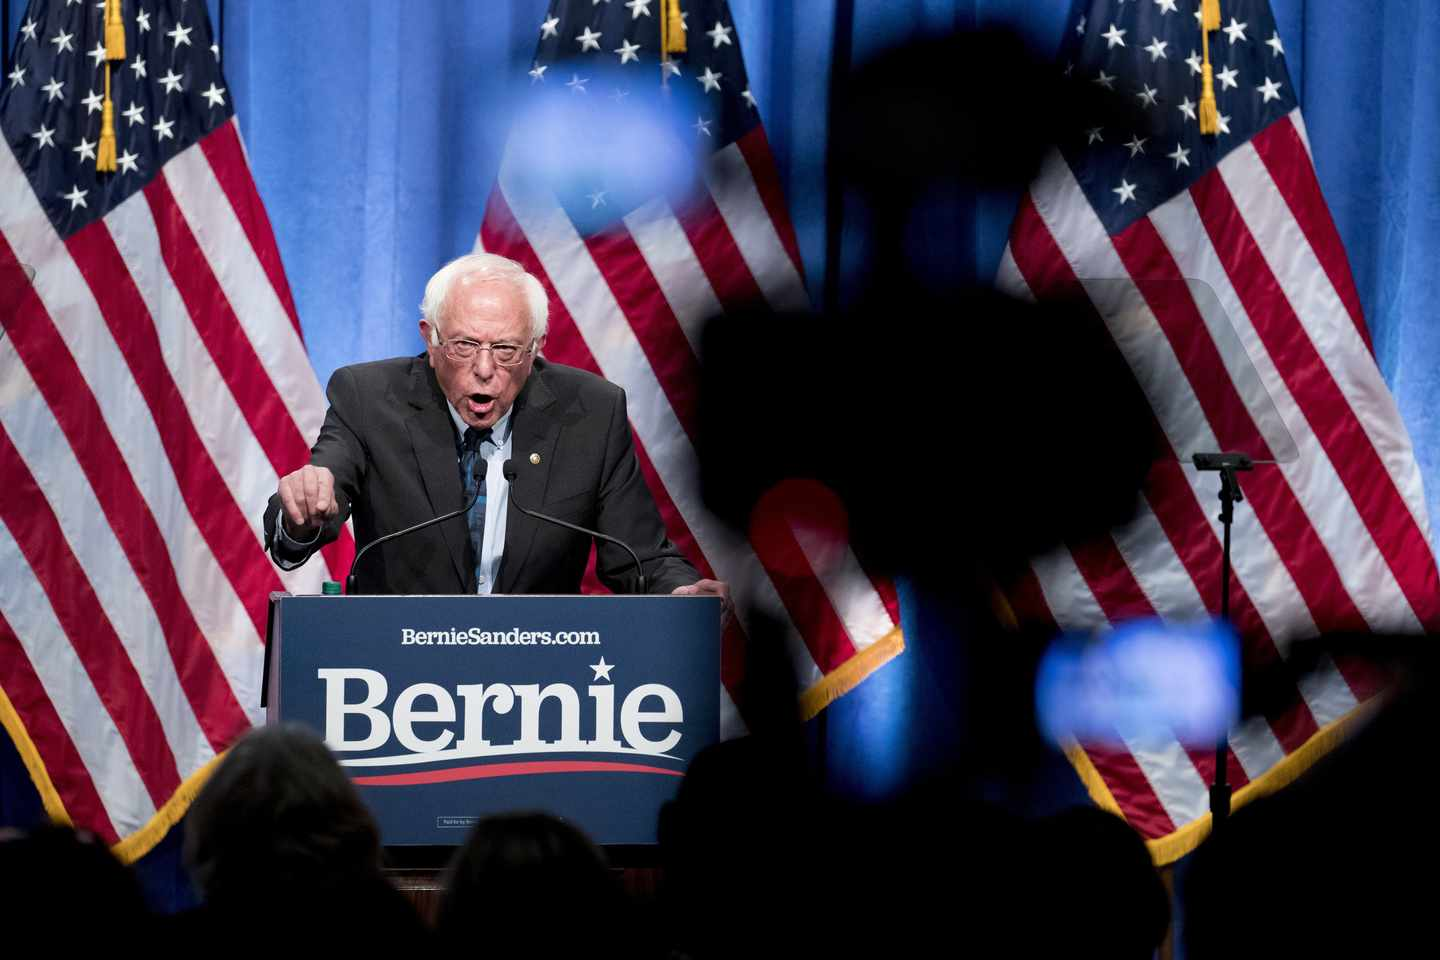 Bernie Sanders plans To Cancel Students Loan Debt